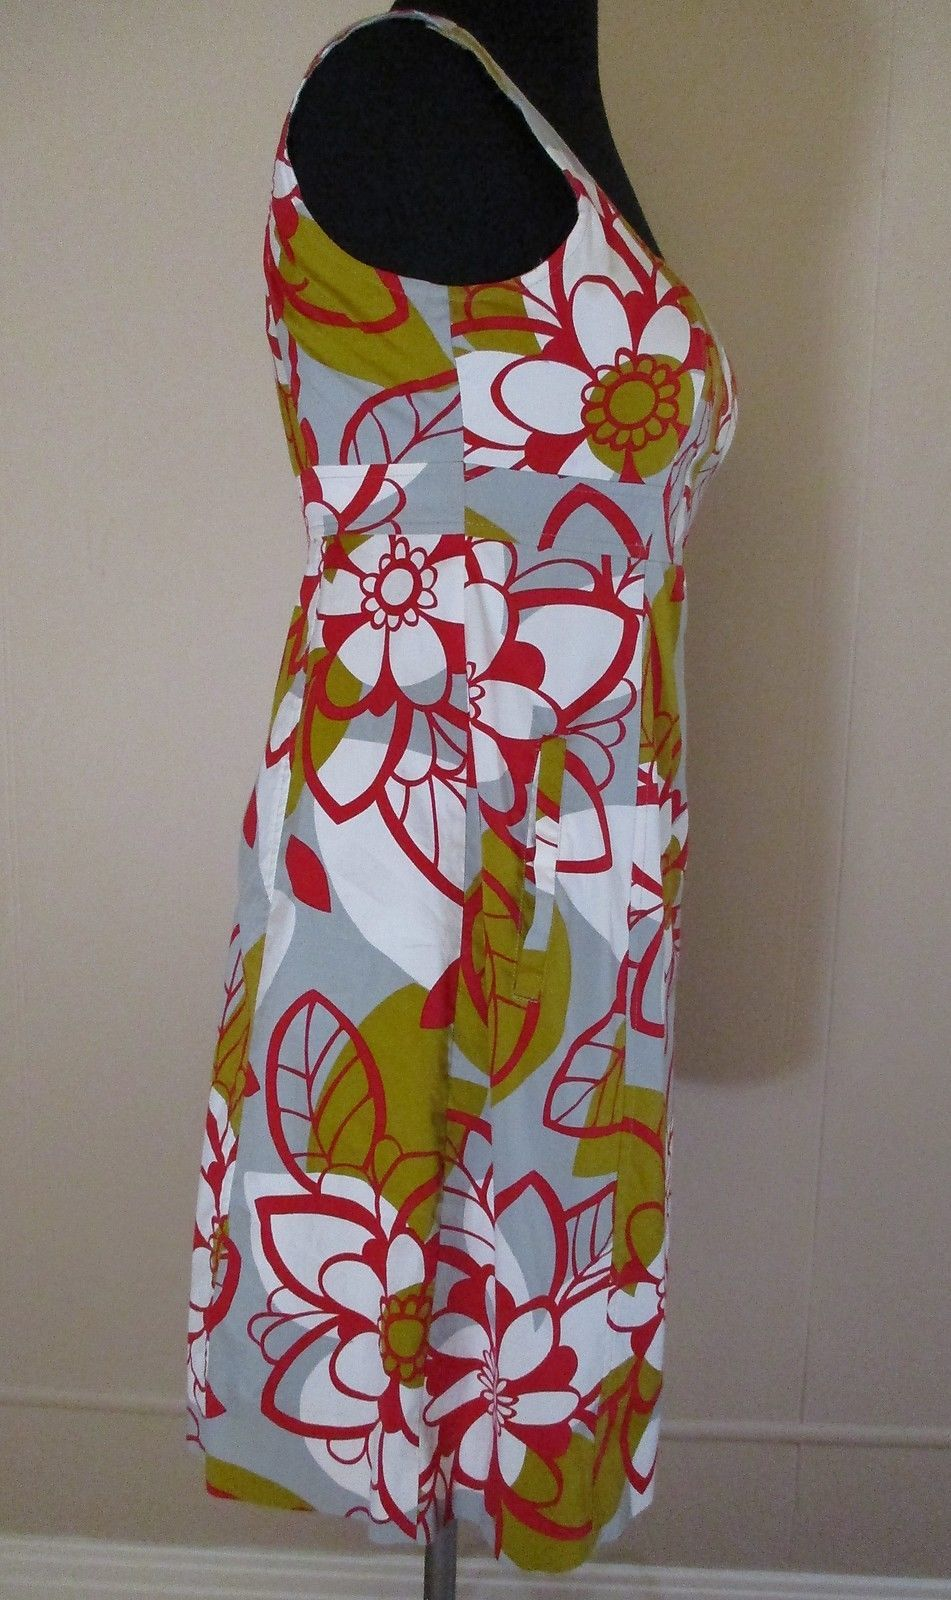 Anthropologie Maeve Dress 'Rousseau' size 2 Women floral prt cotton blend shift